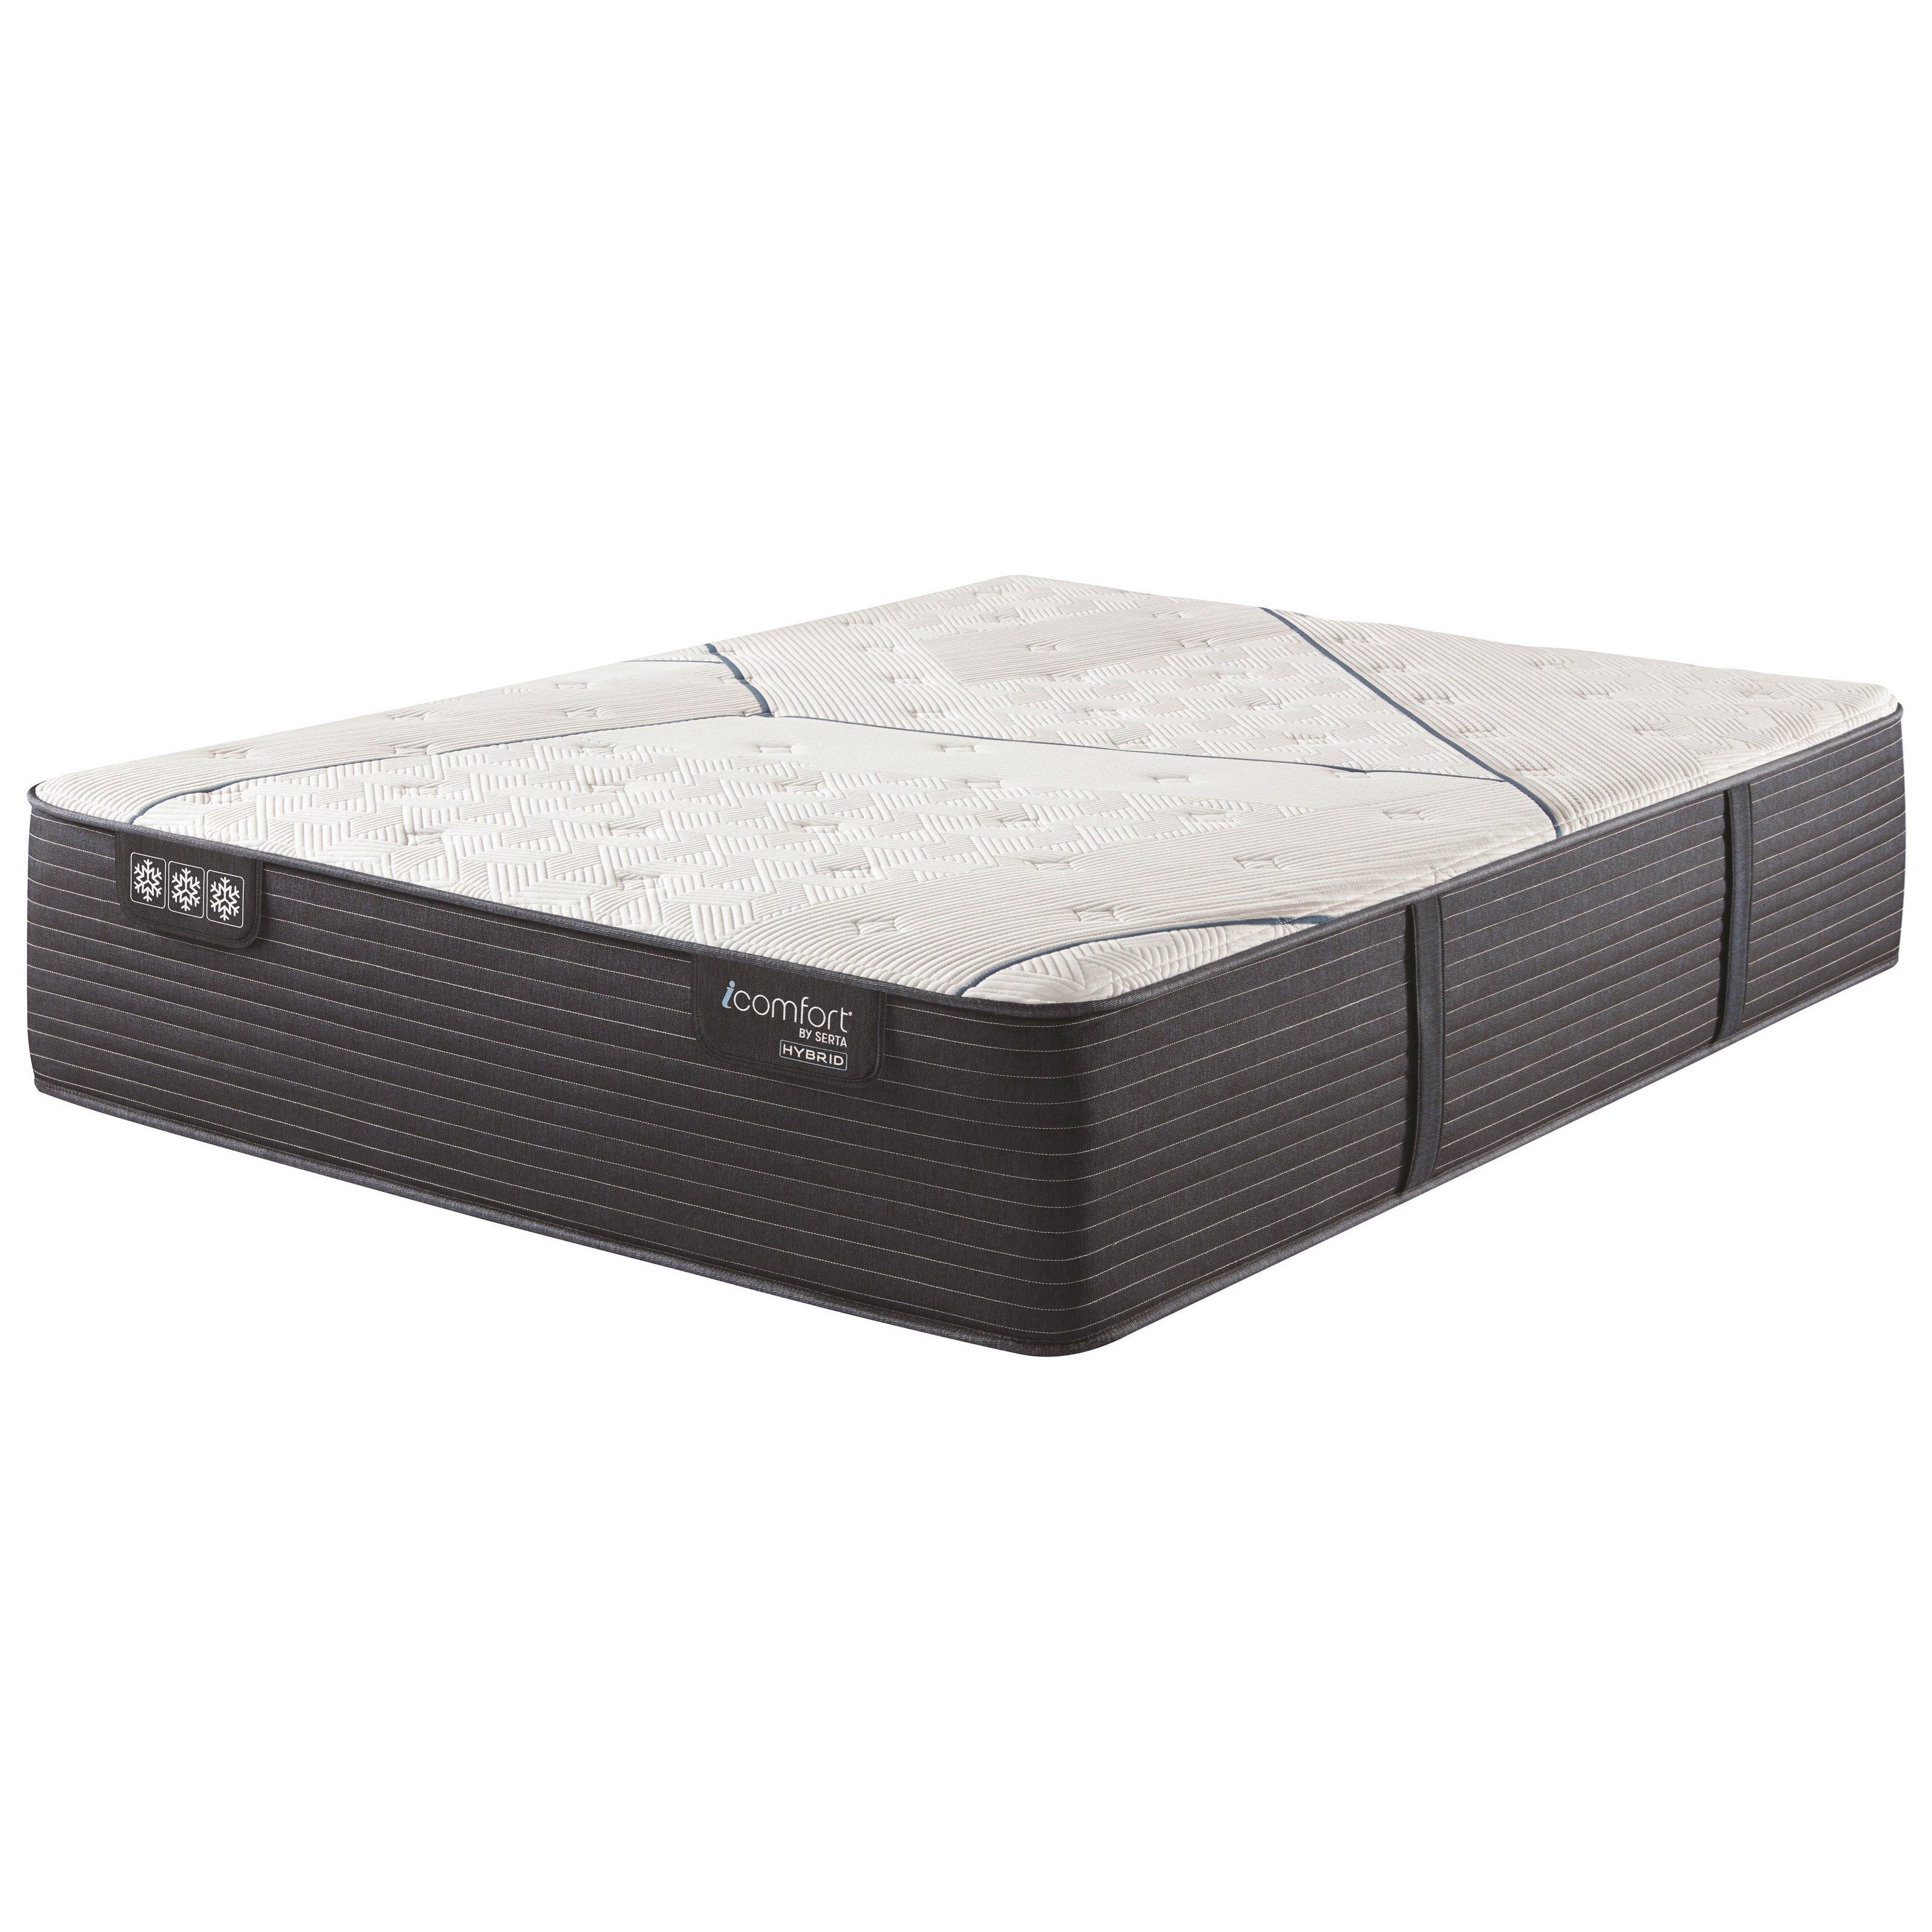 "Queen 14 1/4"" Hybrid Medium Mattress"